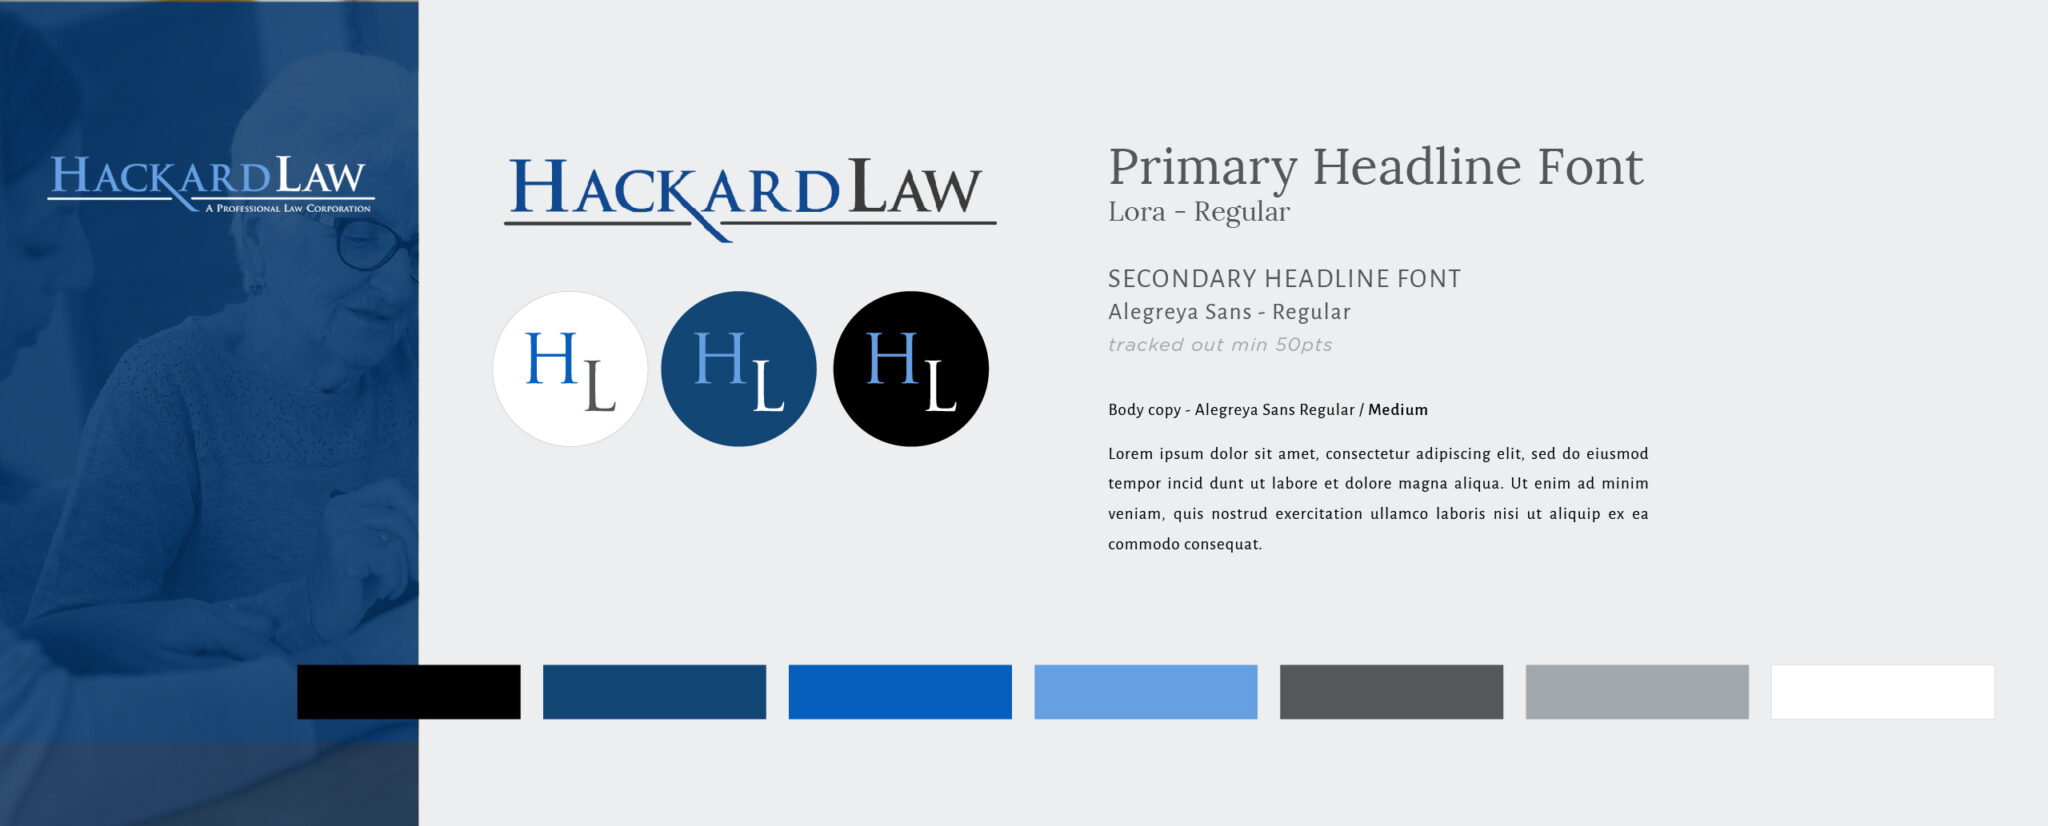 Brand style guide shows logo, fonts and colors.